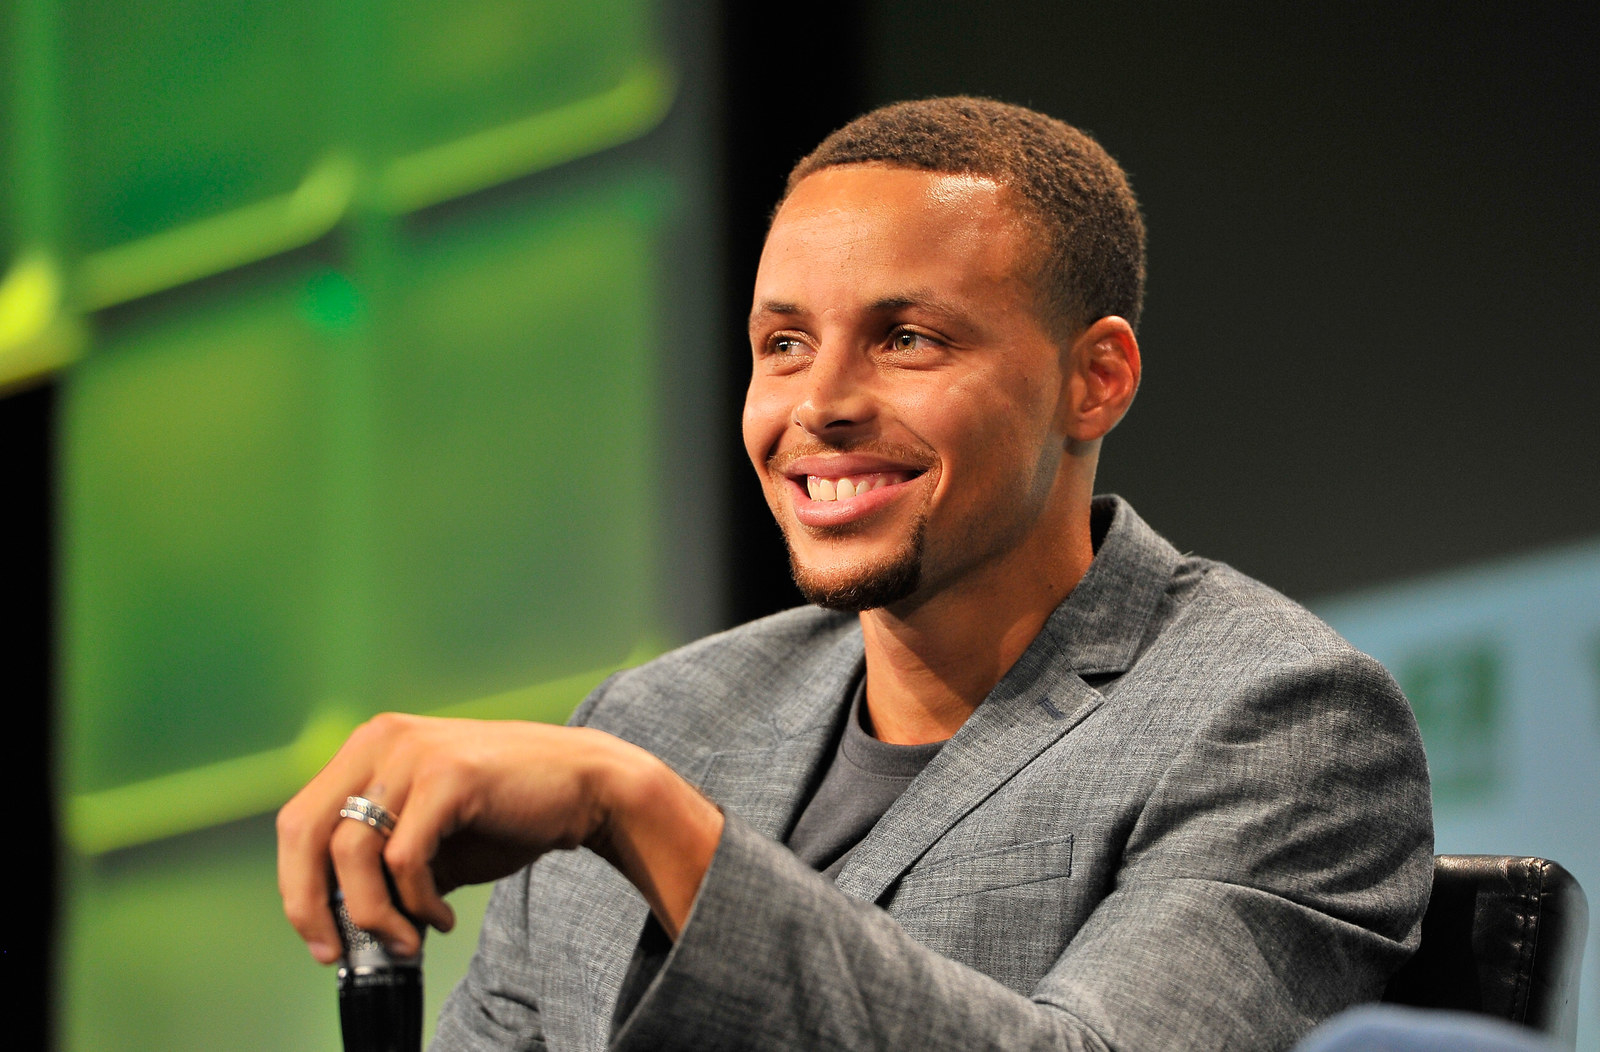 Steph Curry Wrote A Powerful Essay About Womens Equality The  Nba Star Steph Curry Advocated For Gender Equality And For A Push To  Eliminate The Pay